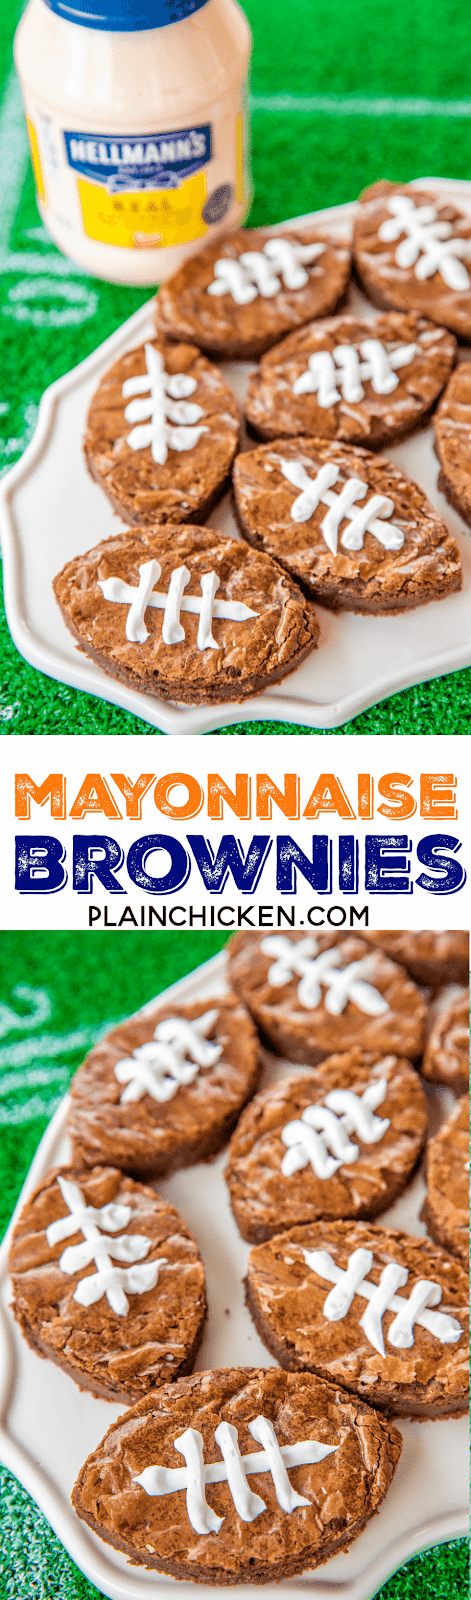 Mayonnaise Brownies - sounds weird, but they are SOOOO good!!! Hellmann's/Best Foods Mayonnaise, chocolate, butter, sugar, flour, baking powder, vanilla, eggs and chocolate chips. Can make a day in advance. Cut into football shapes for a delicious game day snack!